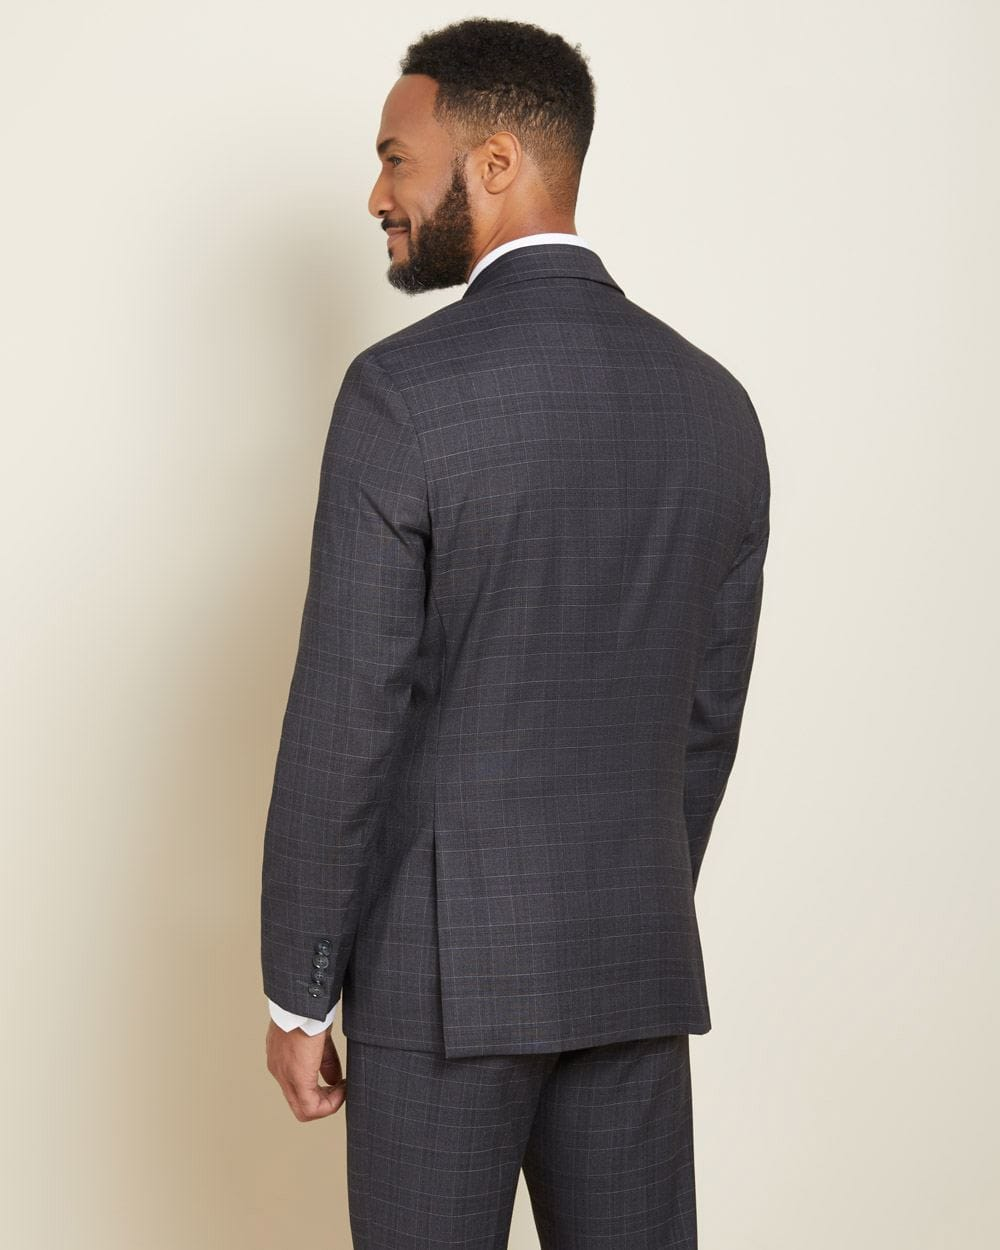 Tailored Fit tonal grey check suit blazer